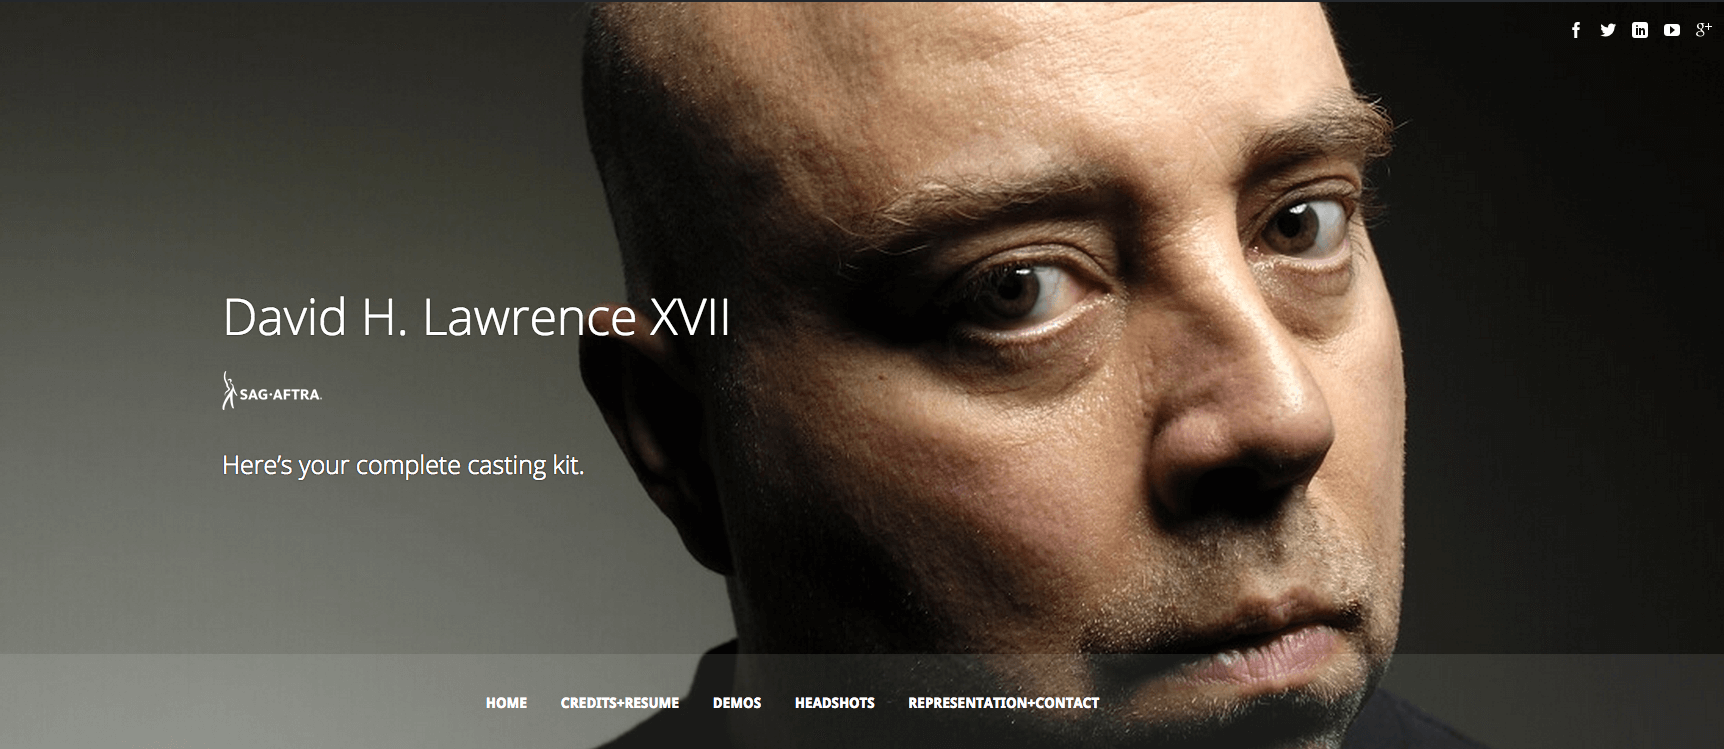 david h  lawrence xvii   actor  voice talent  voice over